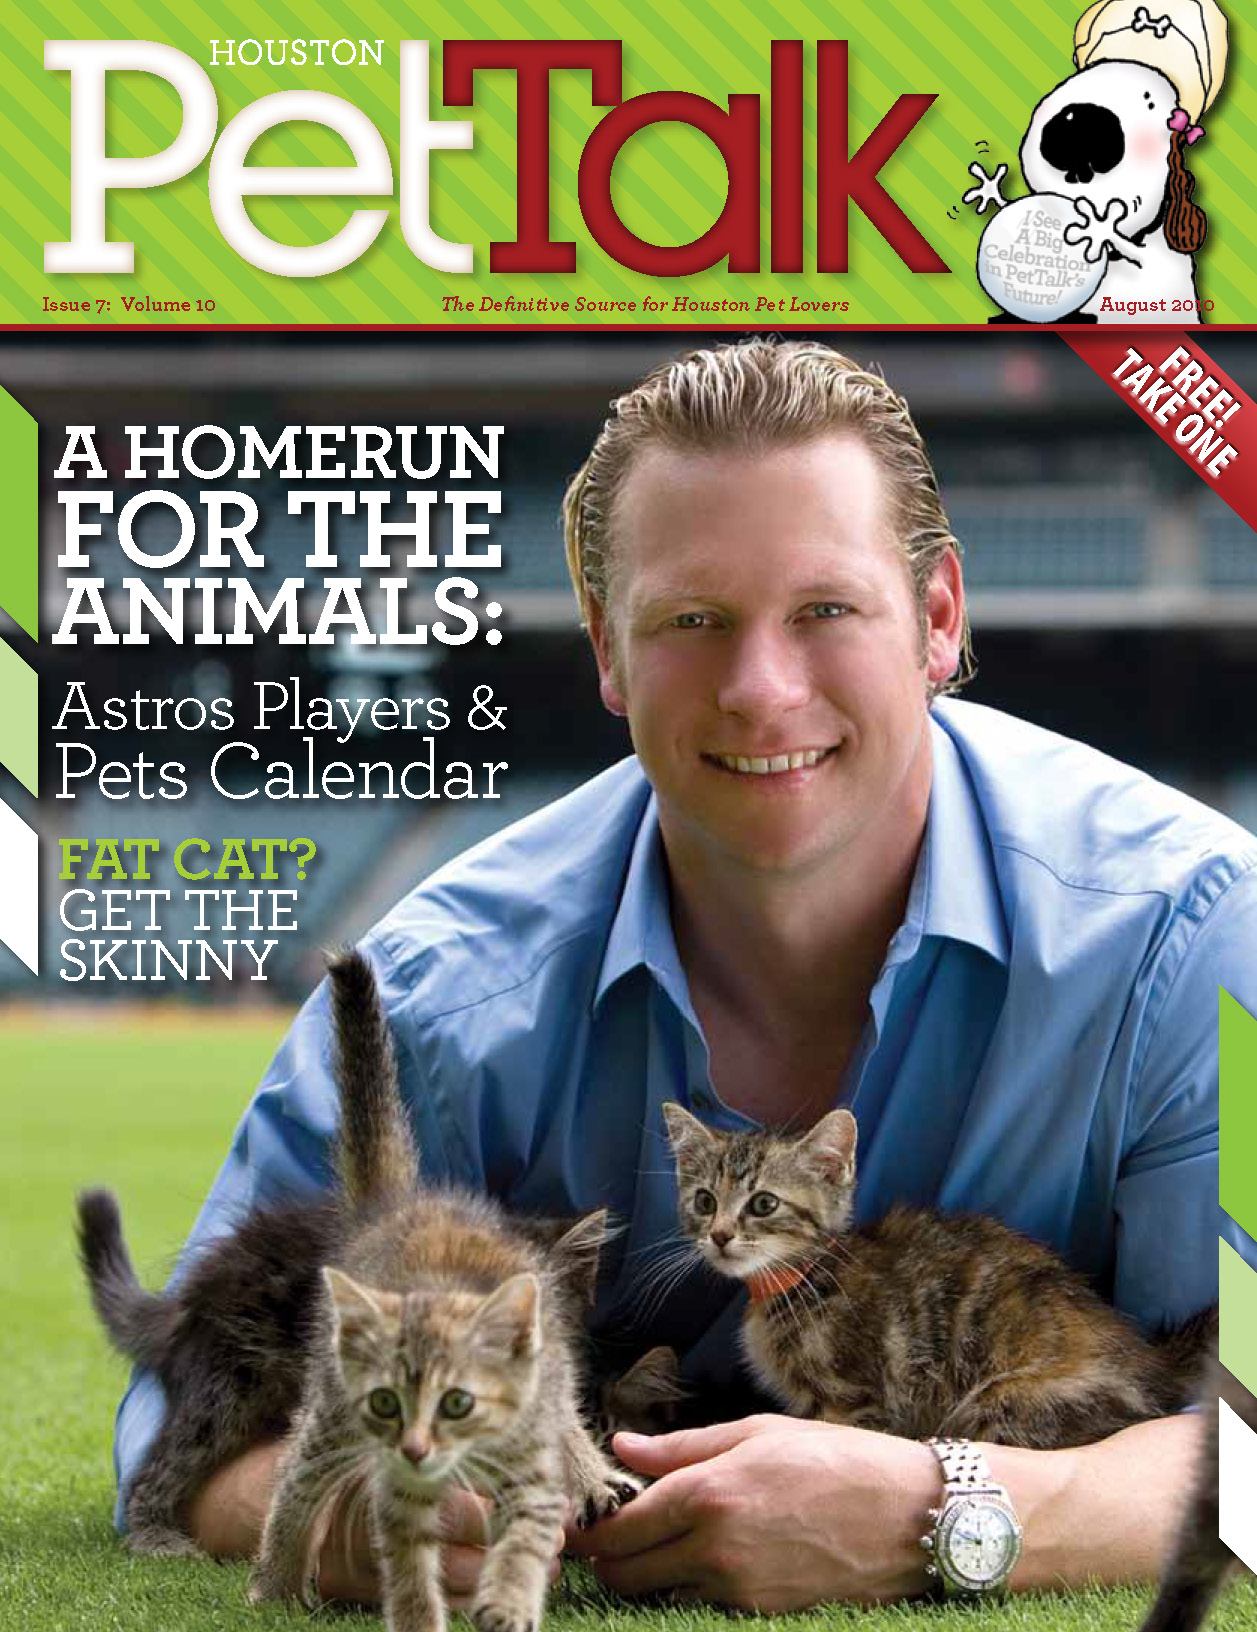 August 2010 Digital Issue of Houston PetTalk